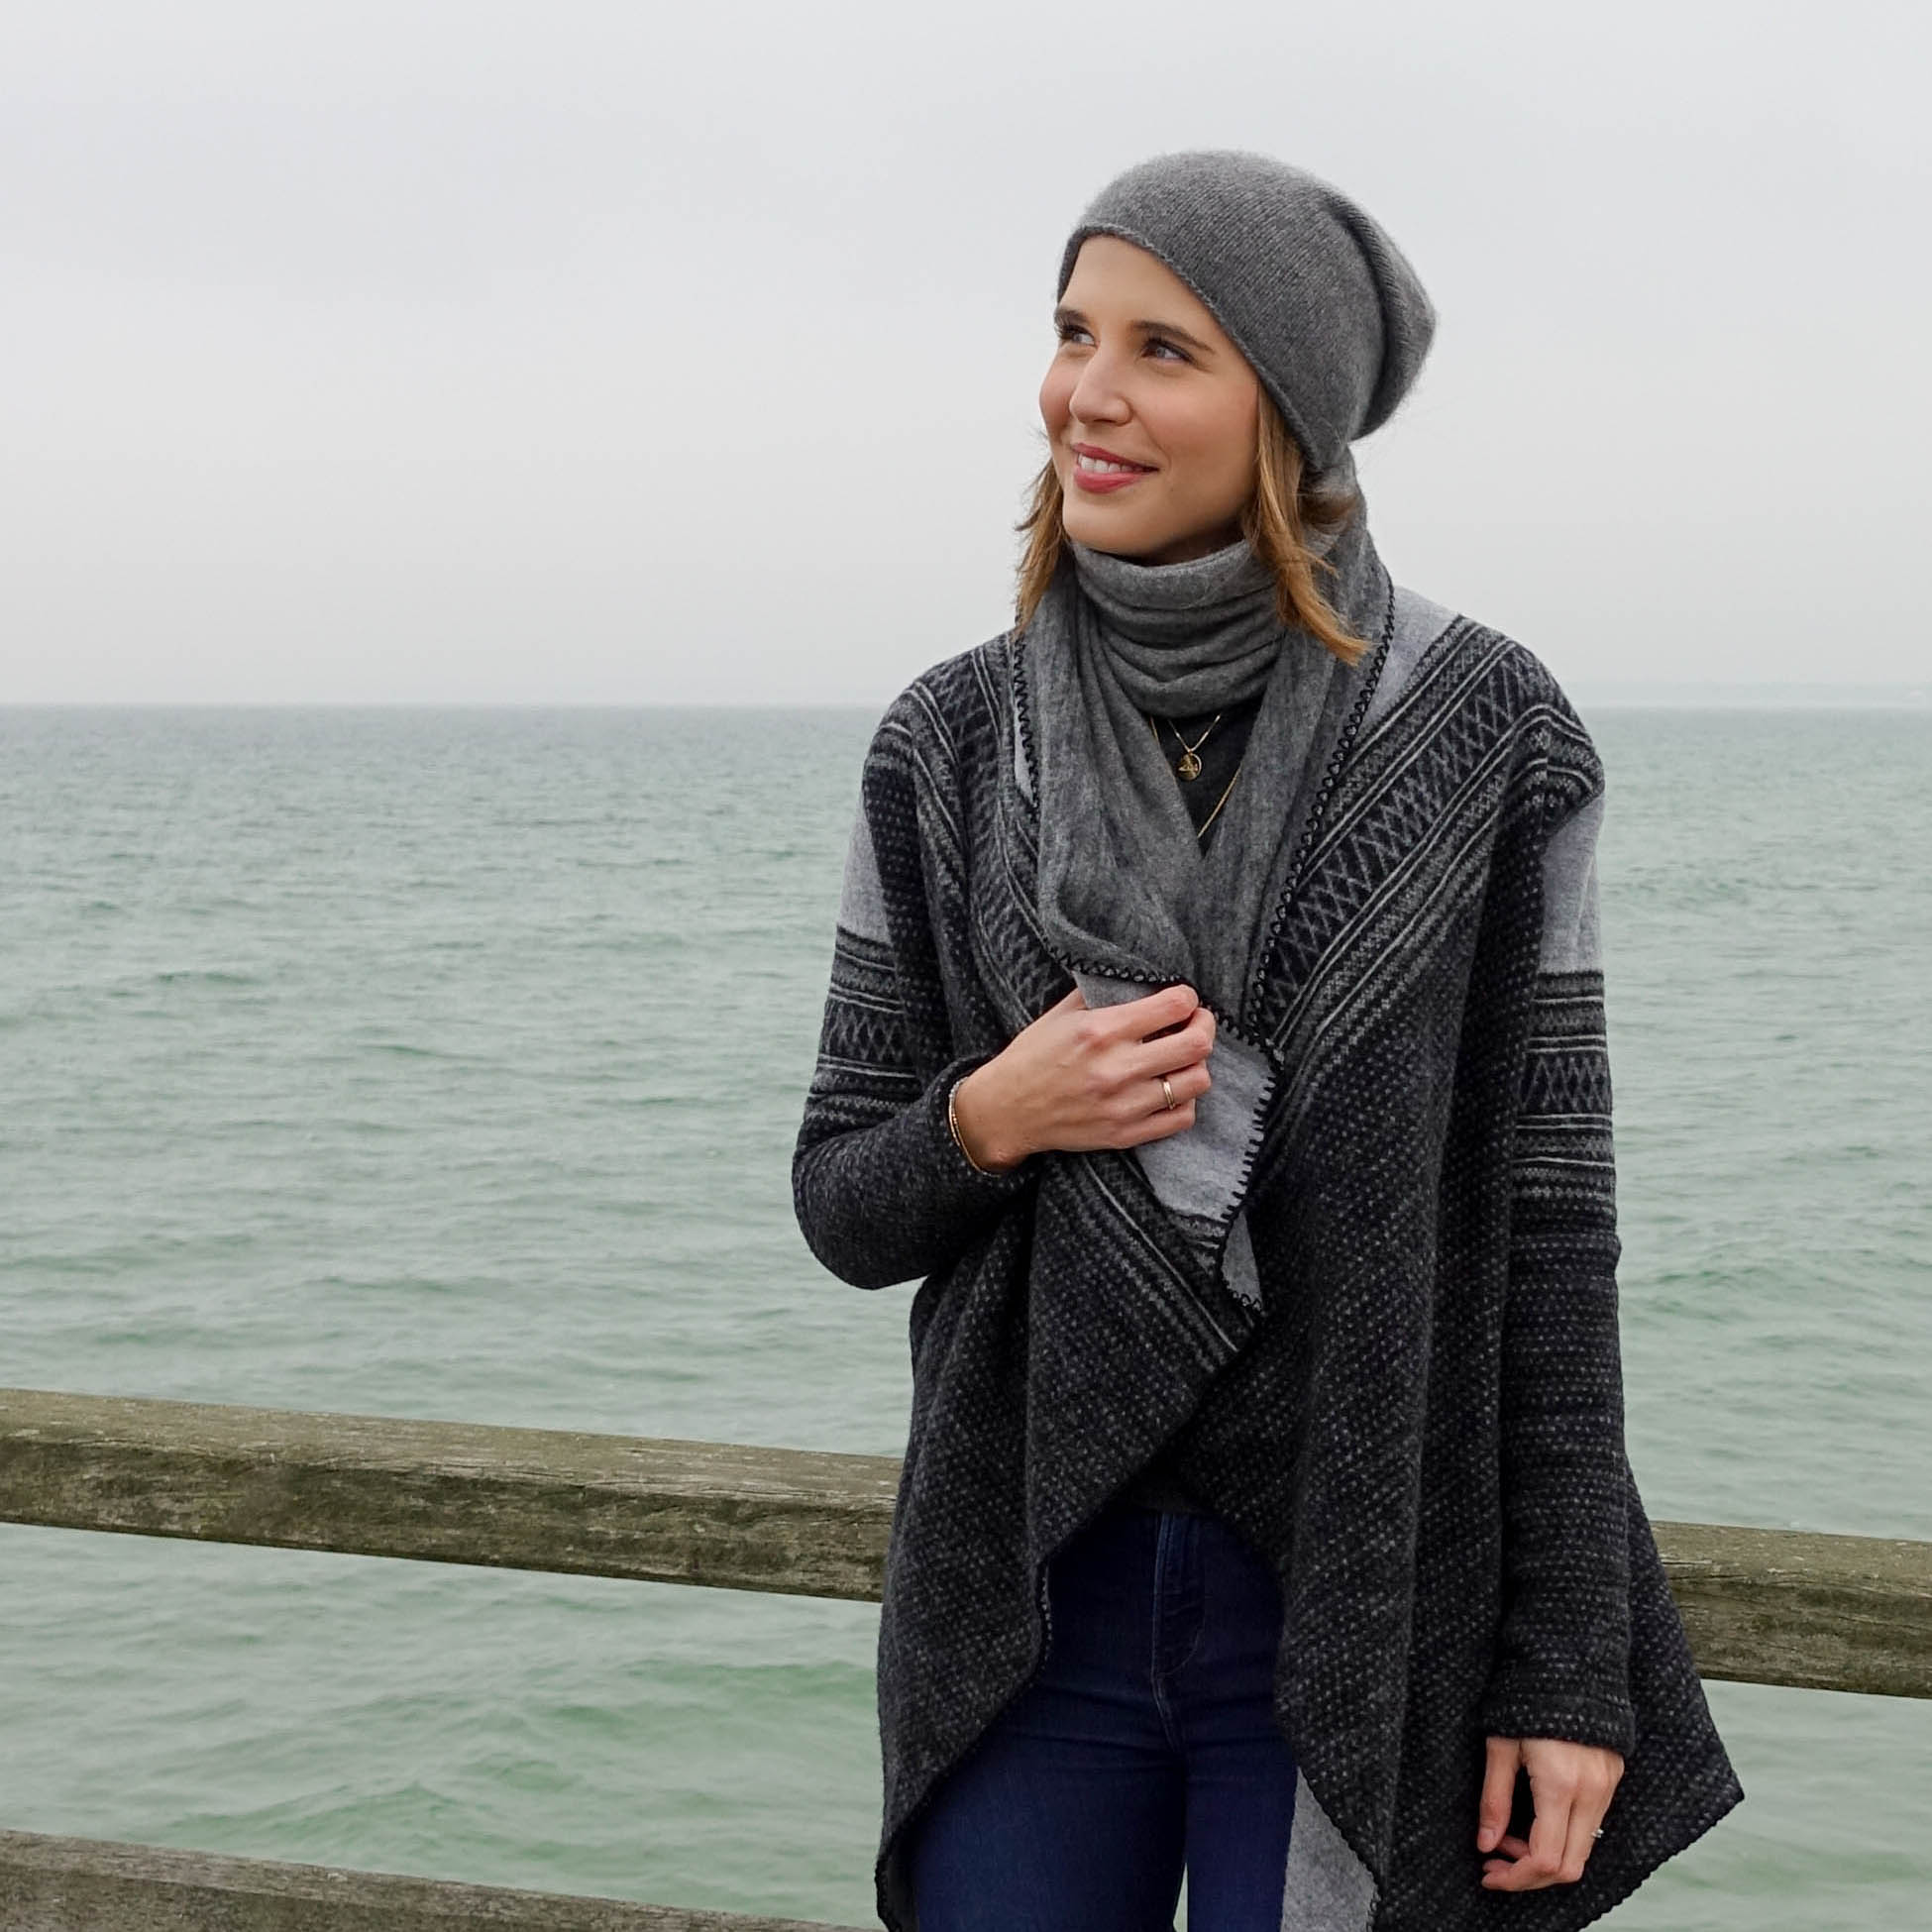 Ostsee im Winter suelovesnyc_weekly_update_ostsee_im_winter